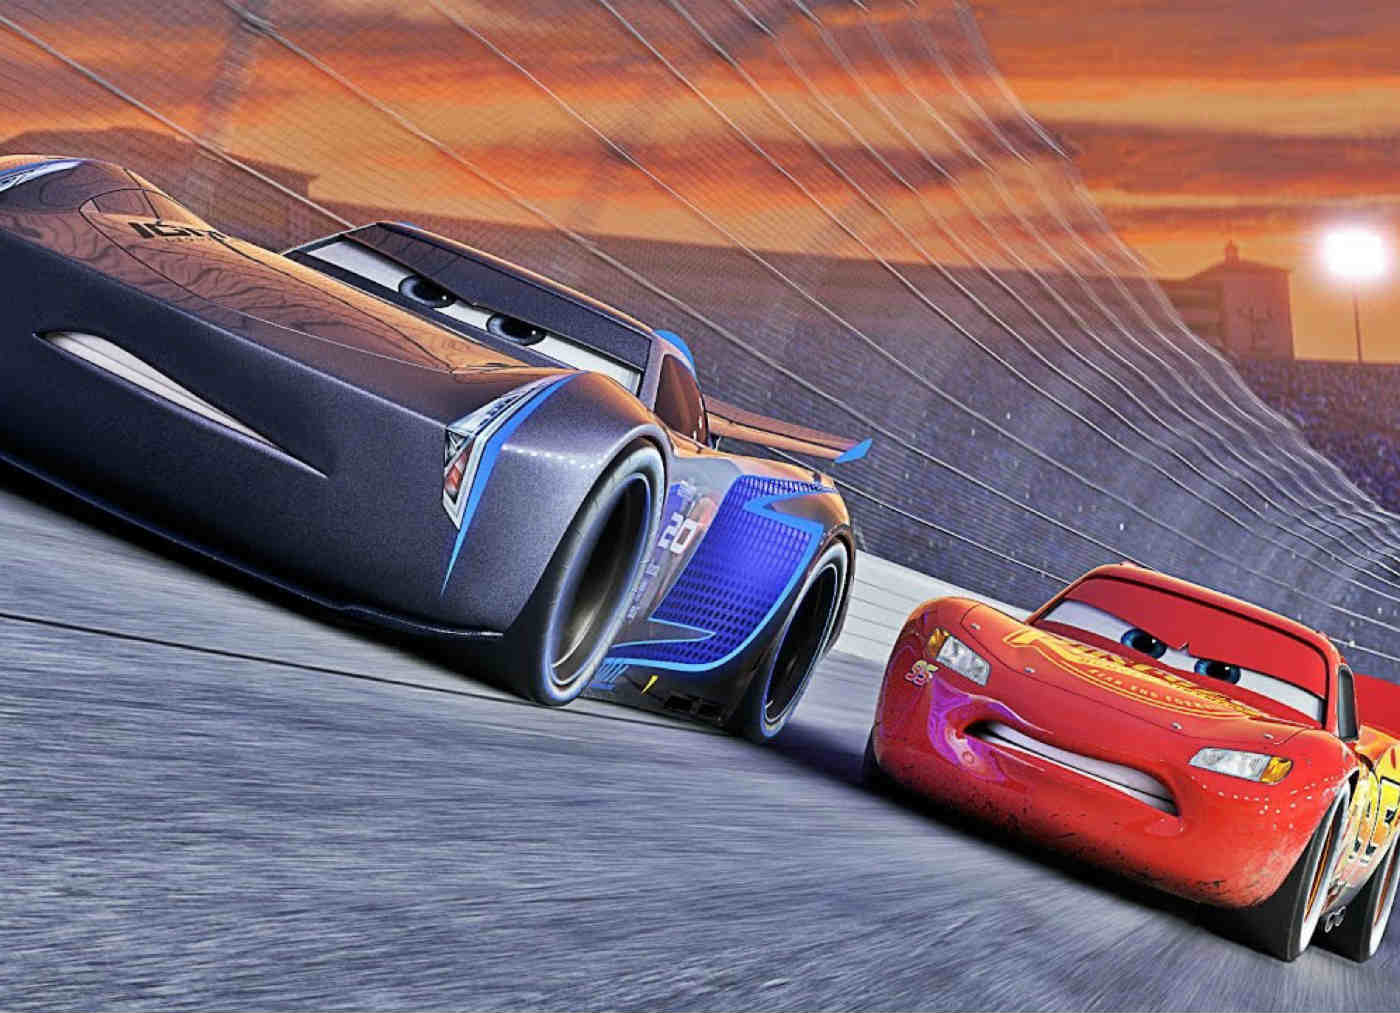 New Cars 3 Trailer: Is This the End of McQueen's Career?